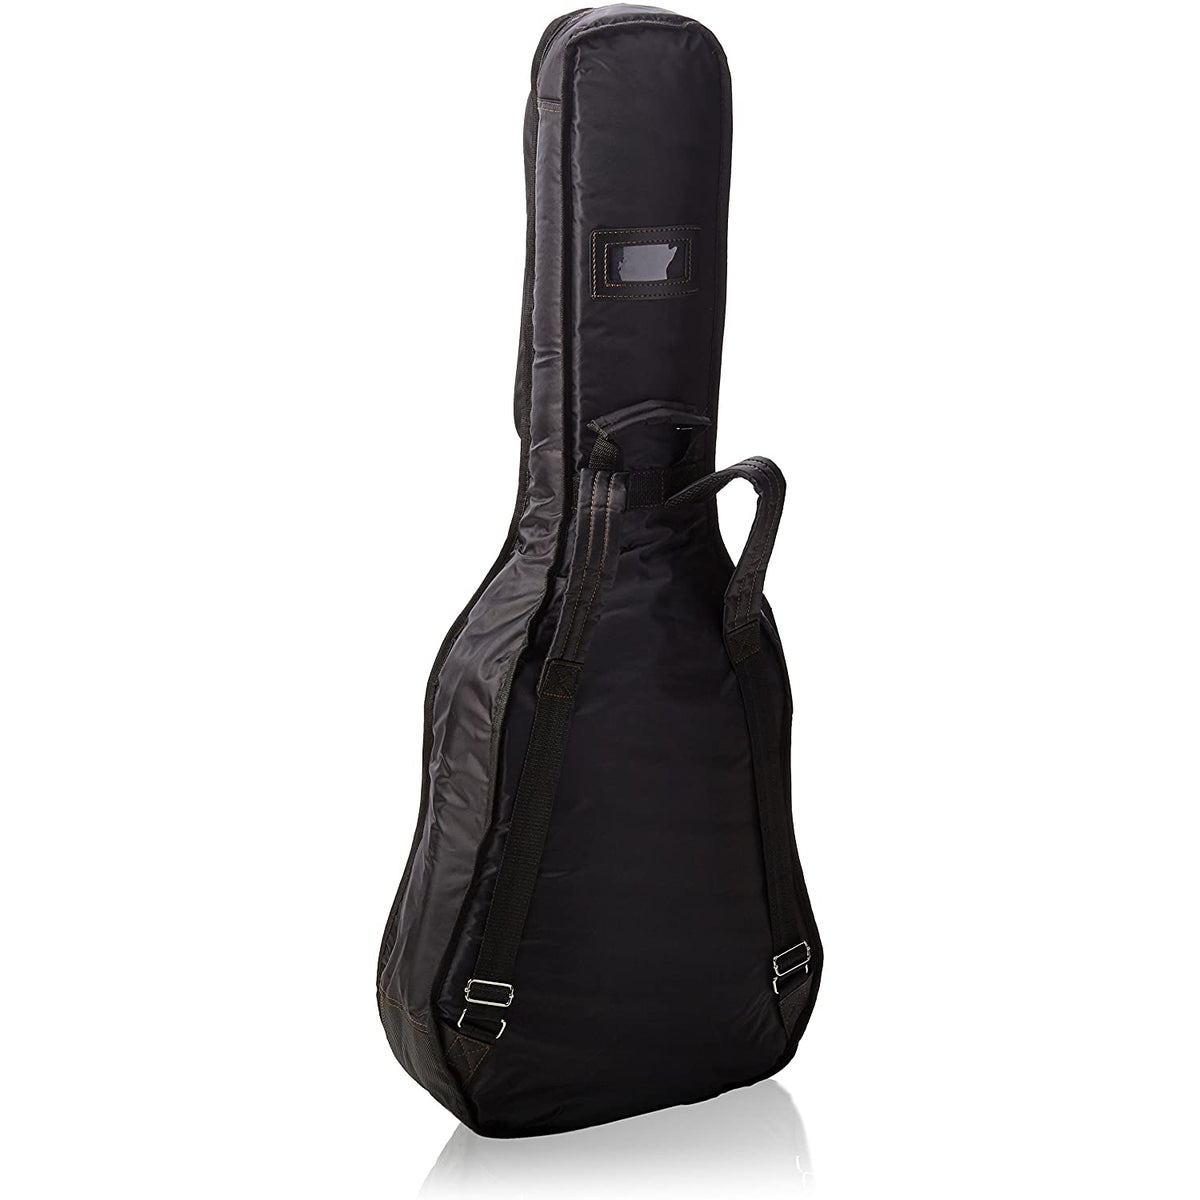 Proel Guitar Cases & Bags Proel BAG-210PN Acoustic Guitar Bag